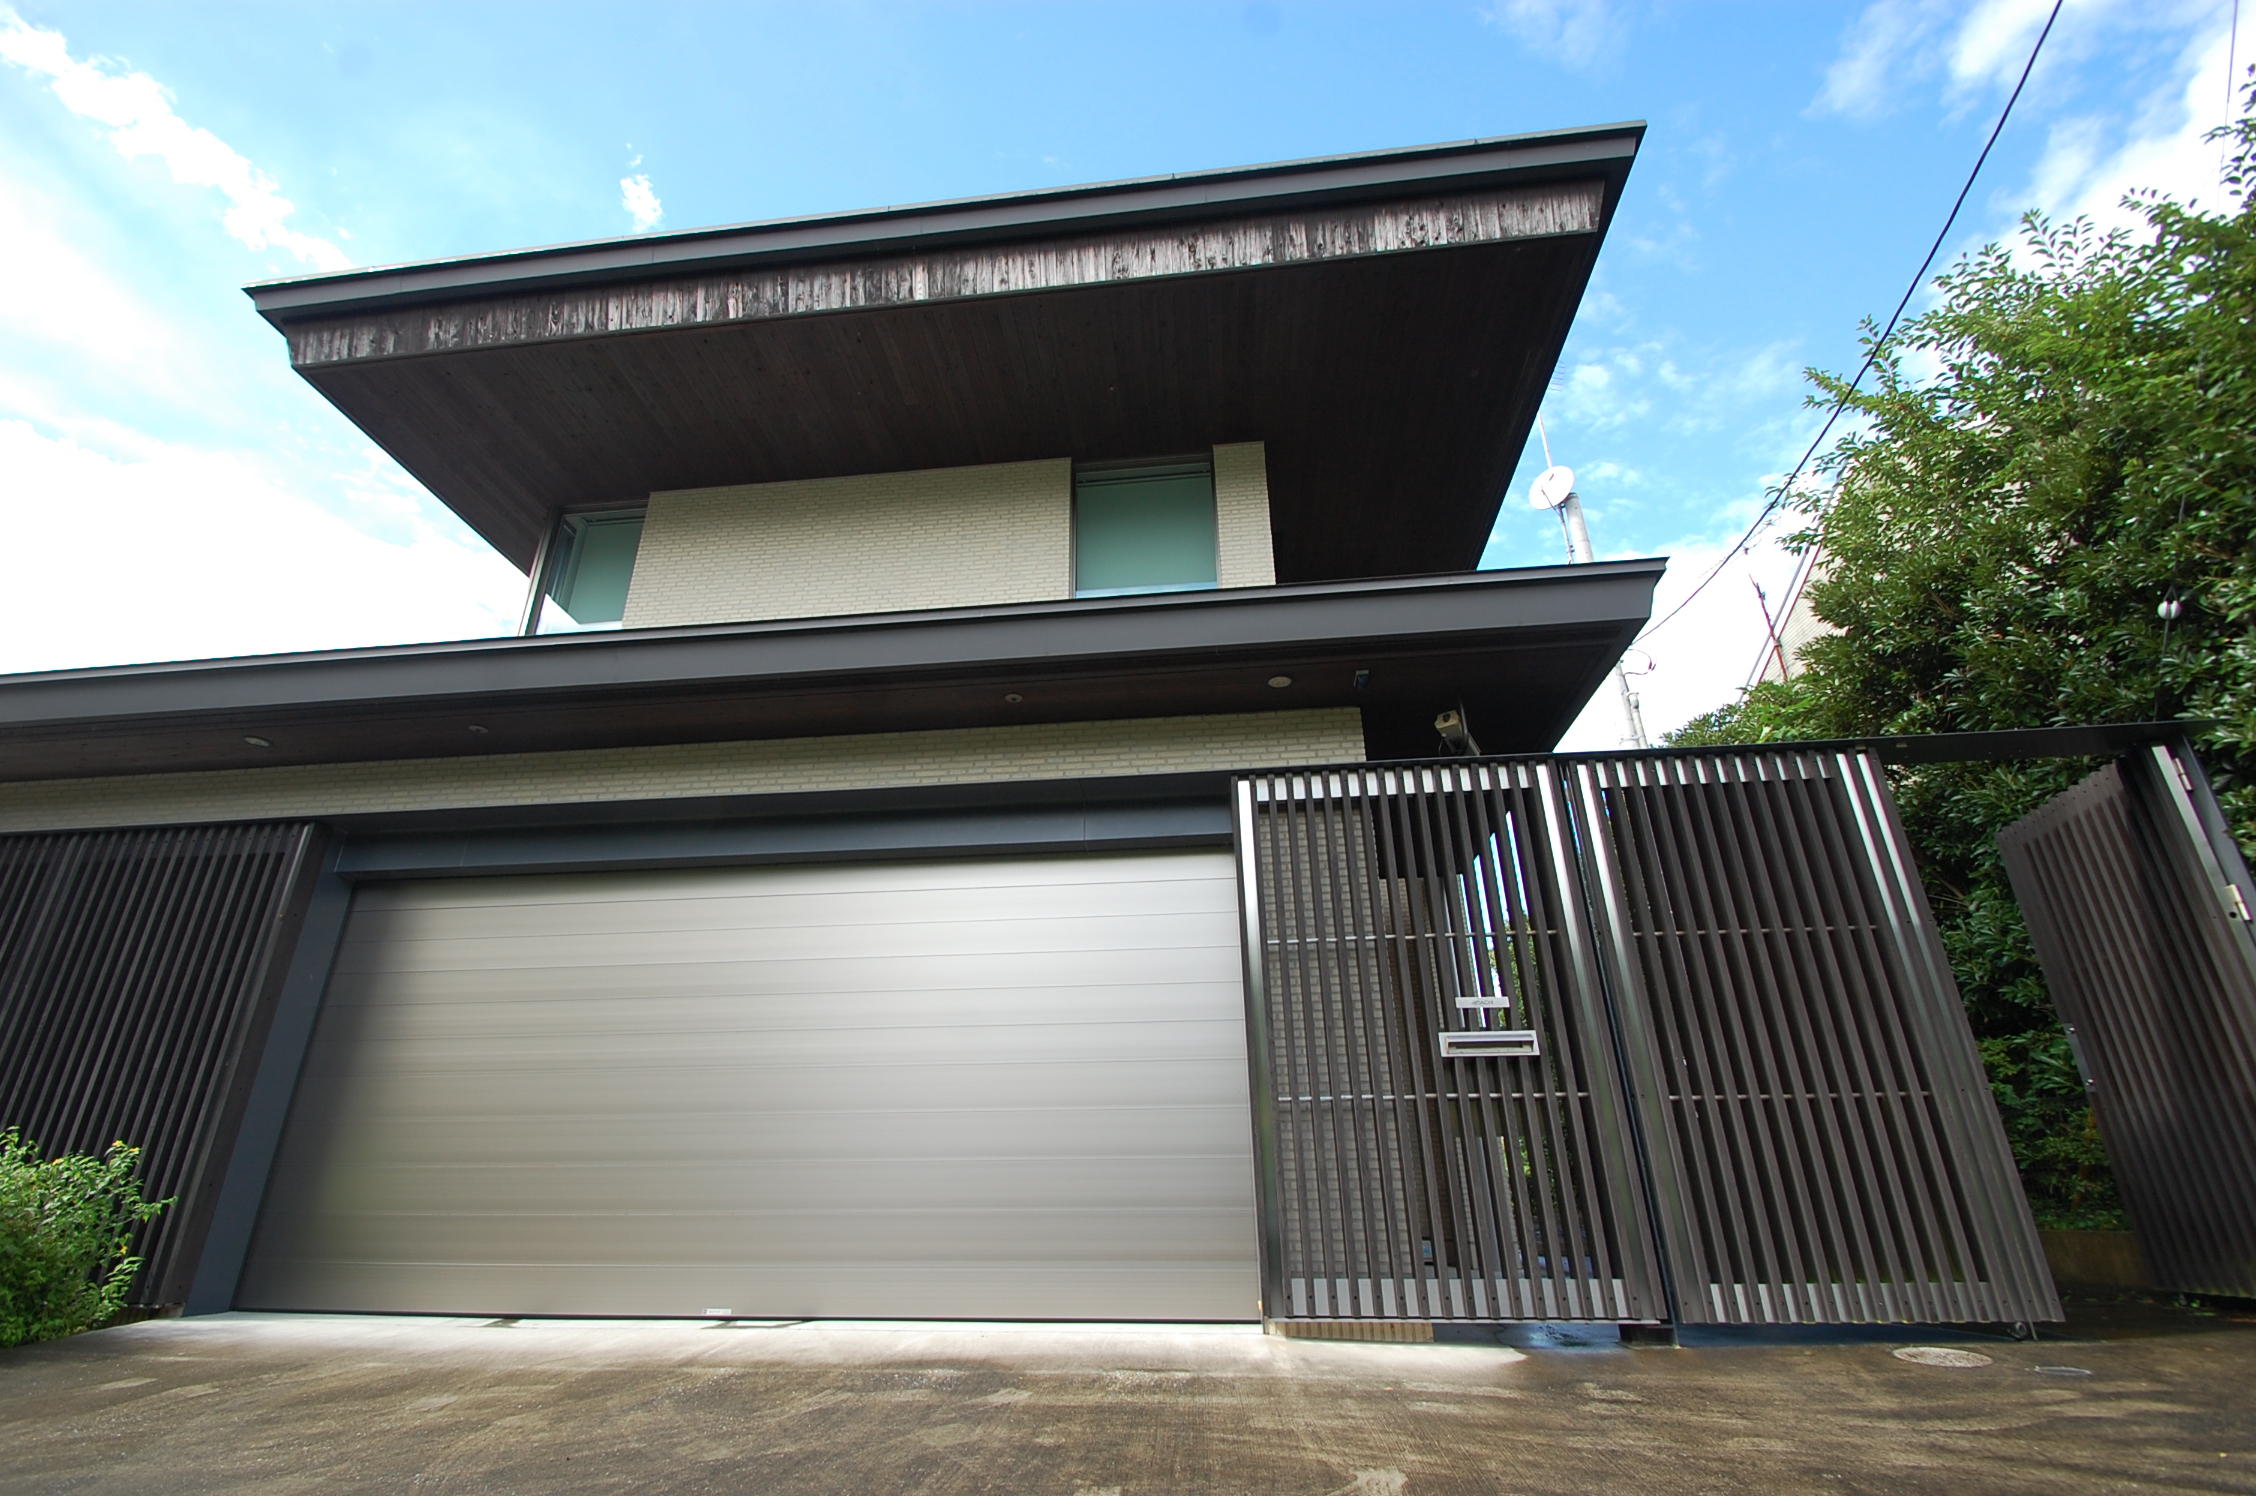 Single Family Home for Sale at Futtsu Residence Other Japan, Other Areas In Japan, Japan